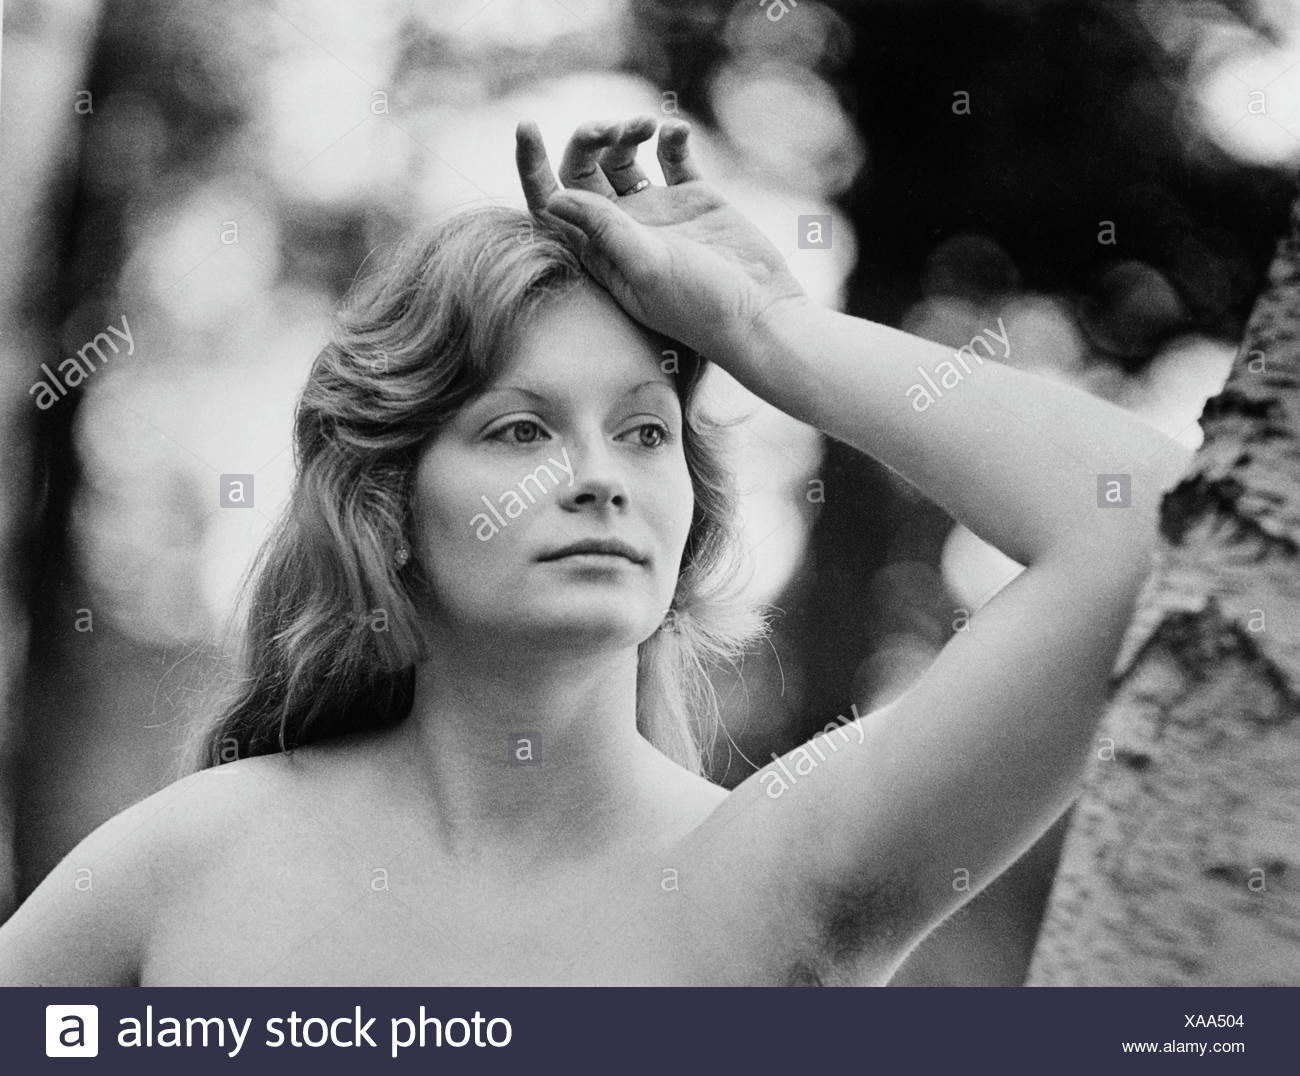 Young woman, East Germany, around 1972